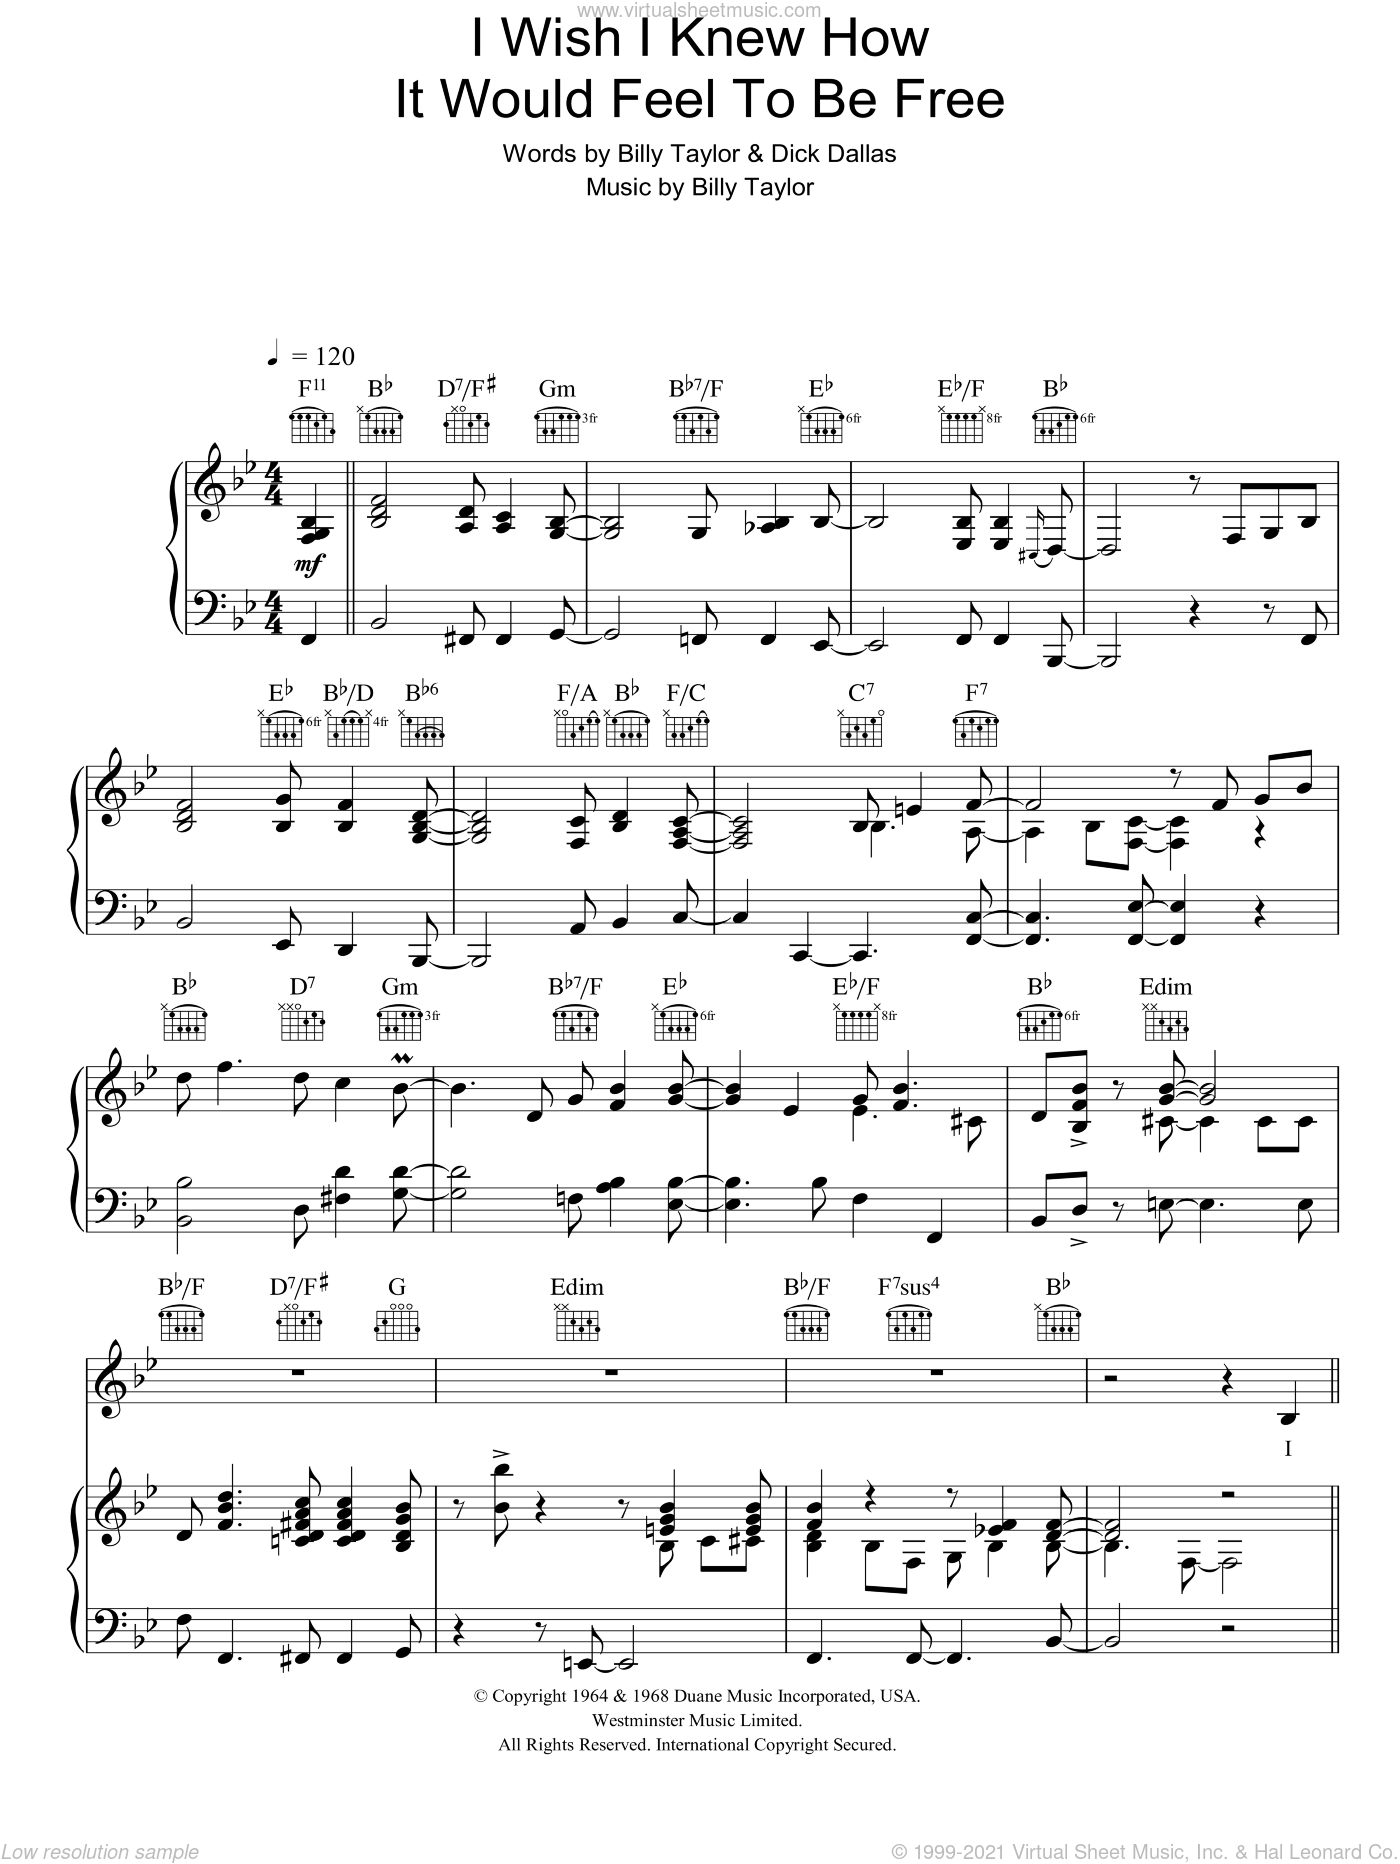 I Wish I Knew How It Would Feel To Be Free sheet music for voice, piano or guitar by Nina Simone, Billy Taylor and Dick Dallas, intermediate. Score Image Preview.